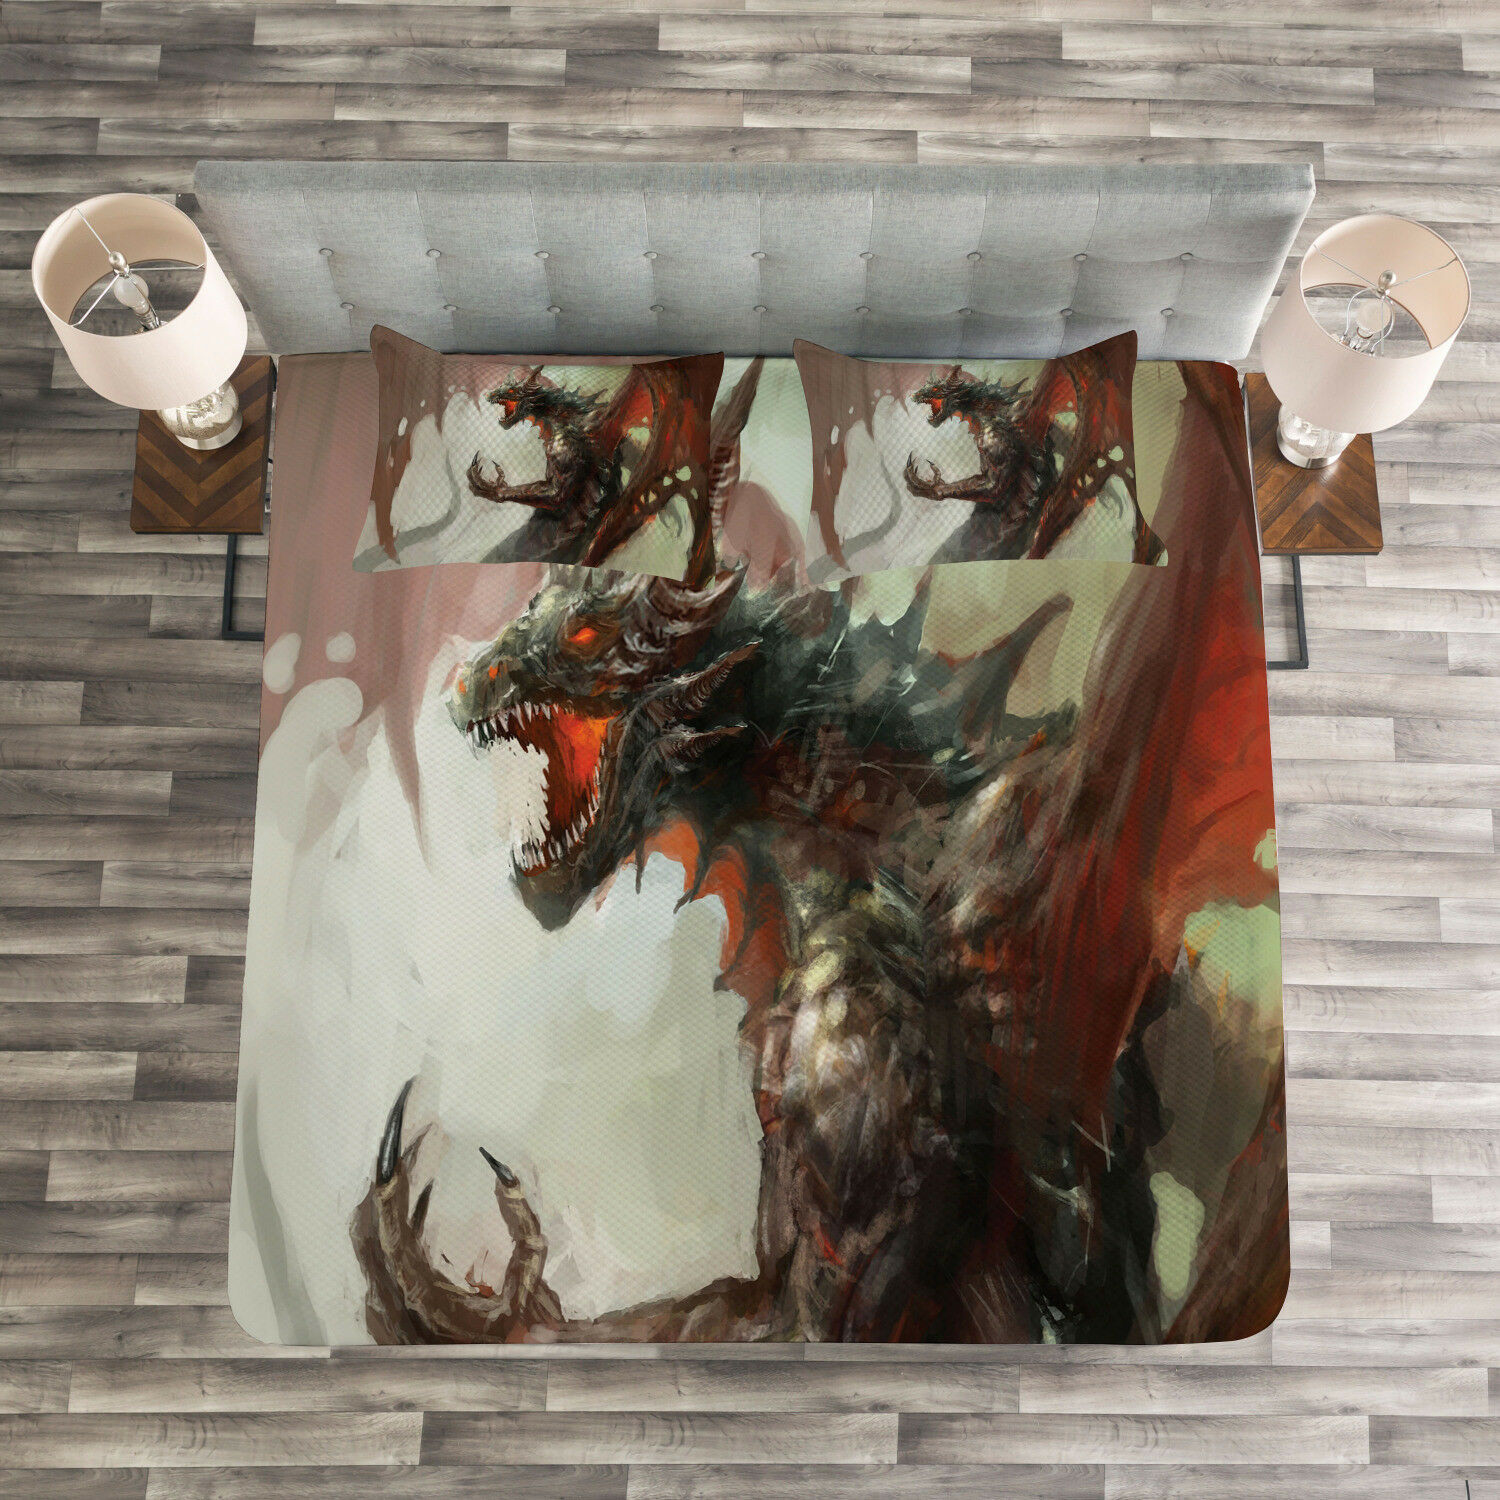 Myth Quilted Bedspread & Pillow Shams Set, Legendary Creature Dragon Print